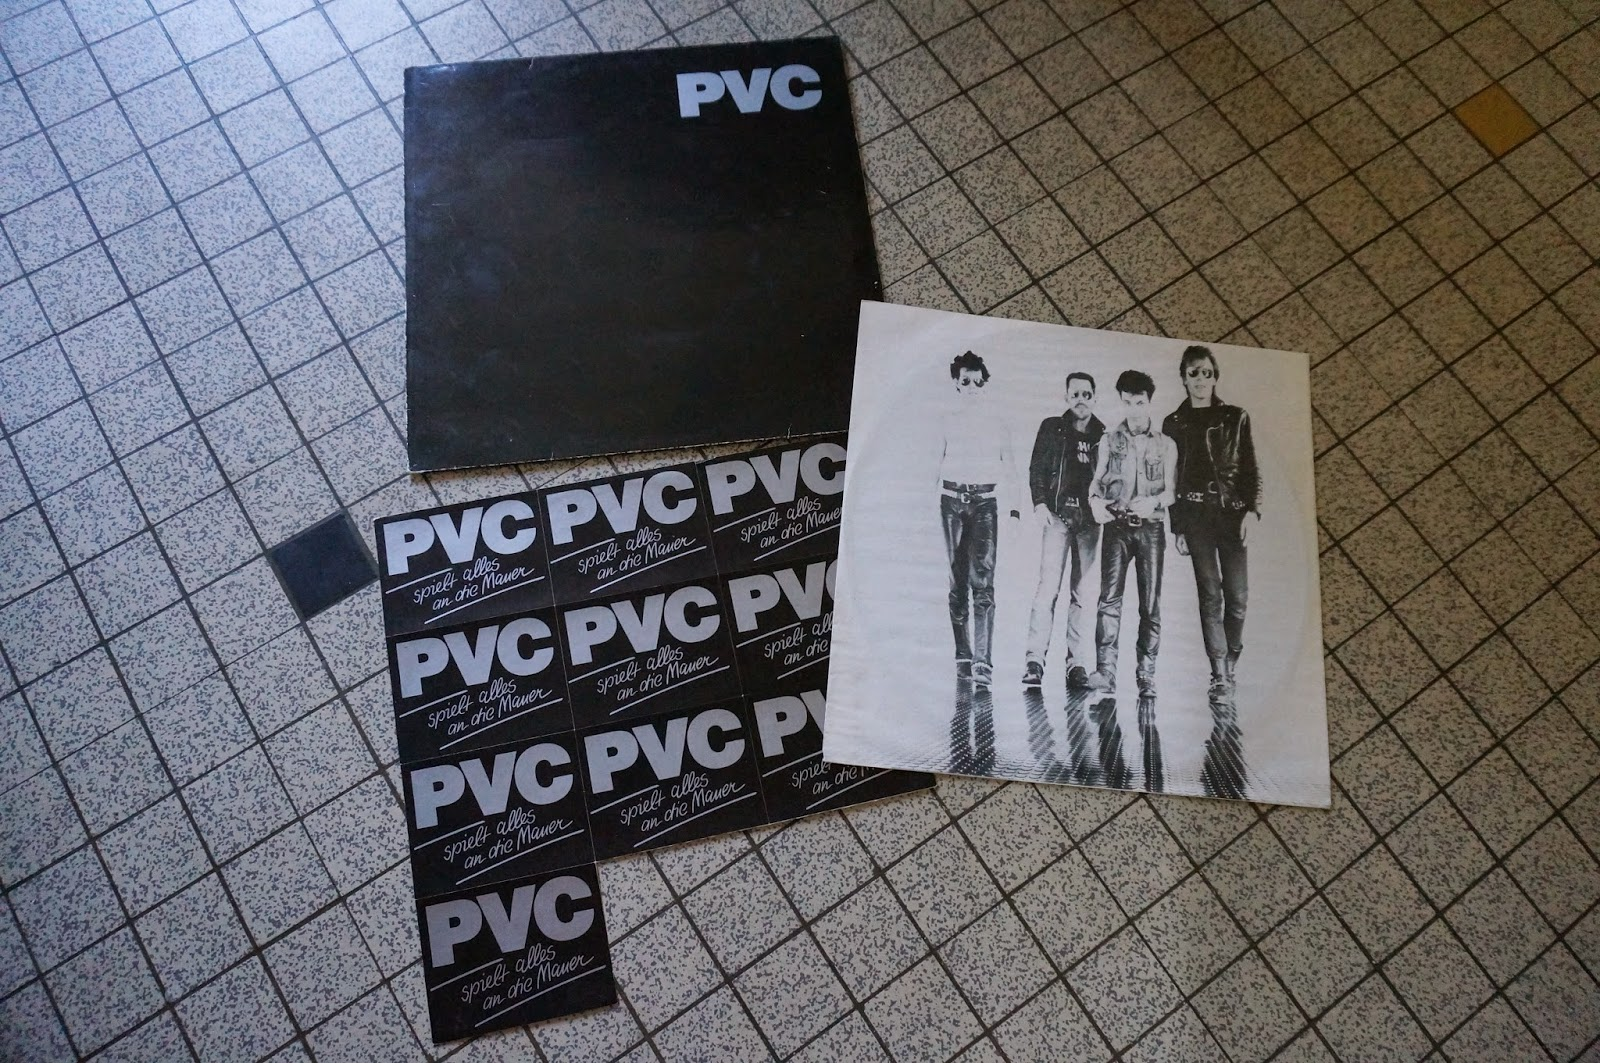 PVC - Can't escape - Berlin by night - 1982  Punk band from Berlin, Germany deutsch